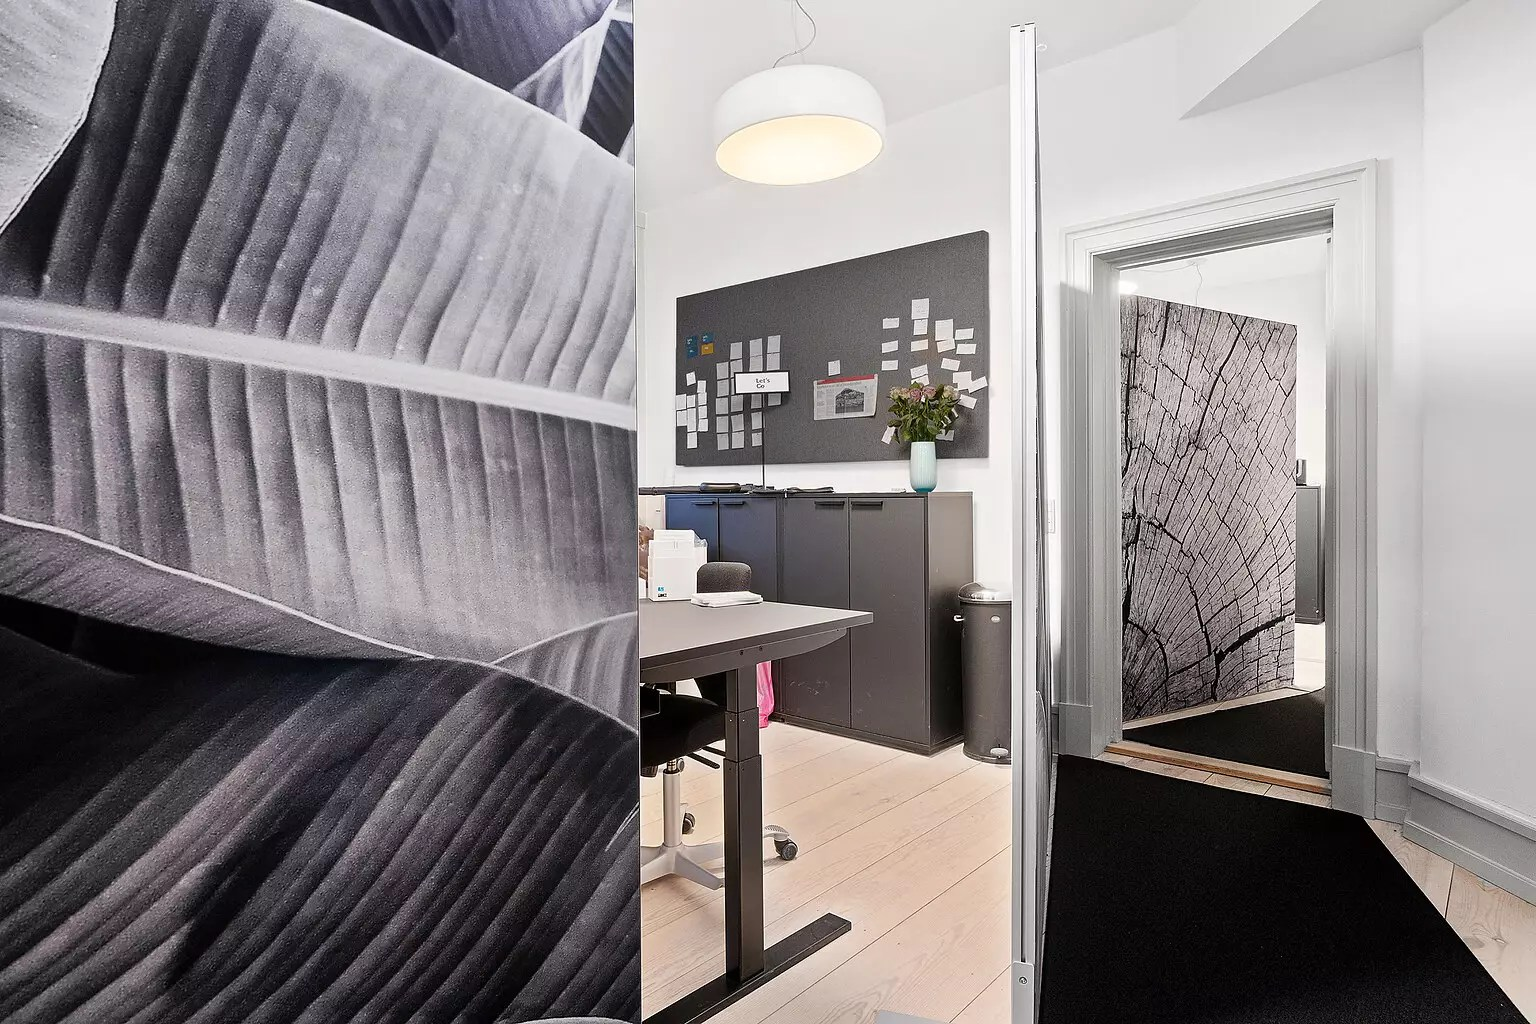 Office at BloxHUB in Copenhagen. Acoustic room dividers with custom prints divide workplaces from walkways. Made by Intelligent Space.